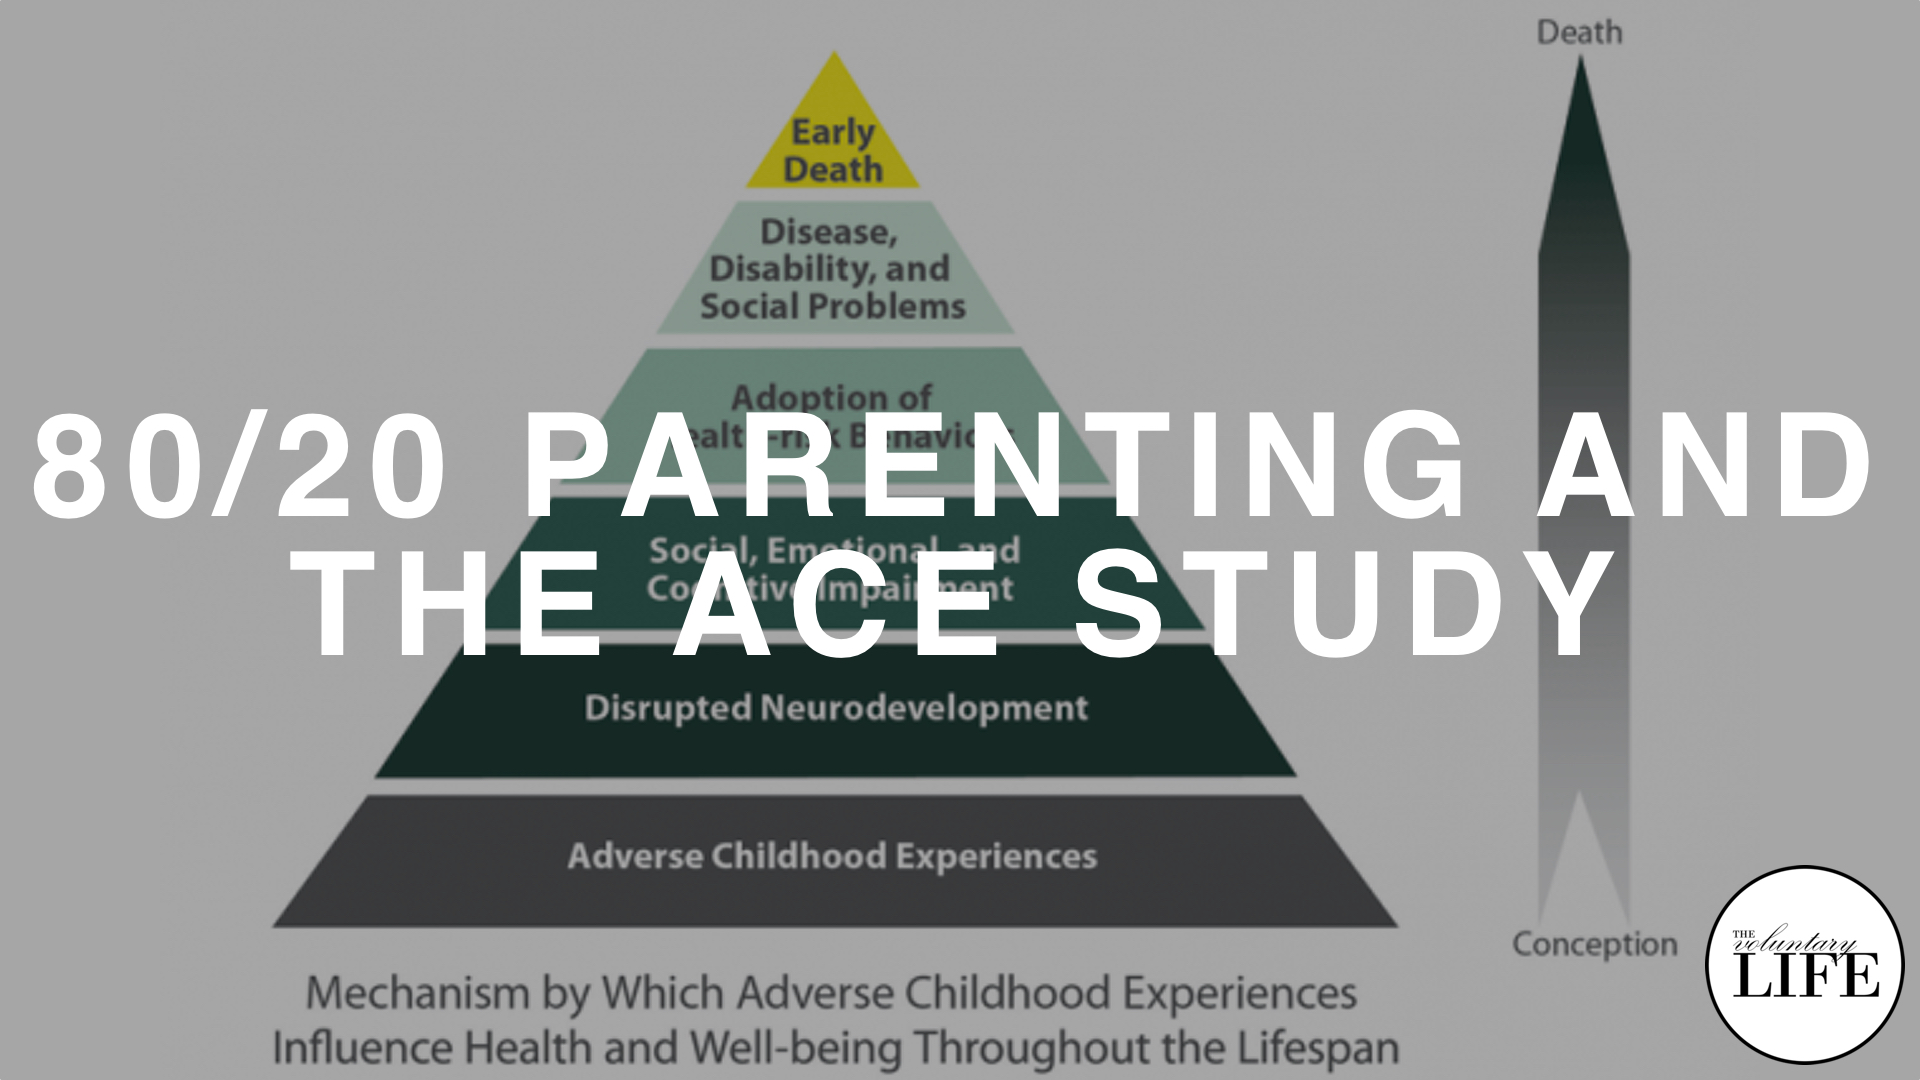 316 80/20 Parenting and the ACE Study